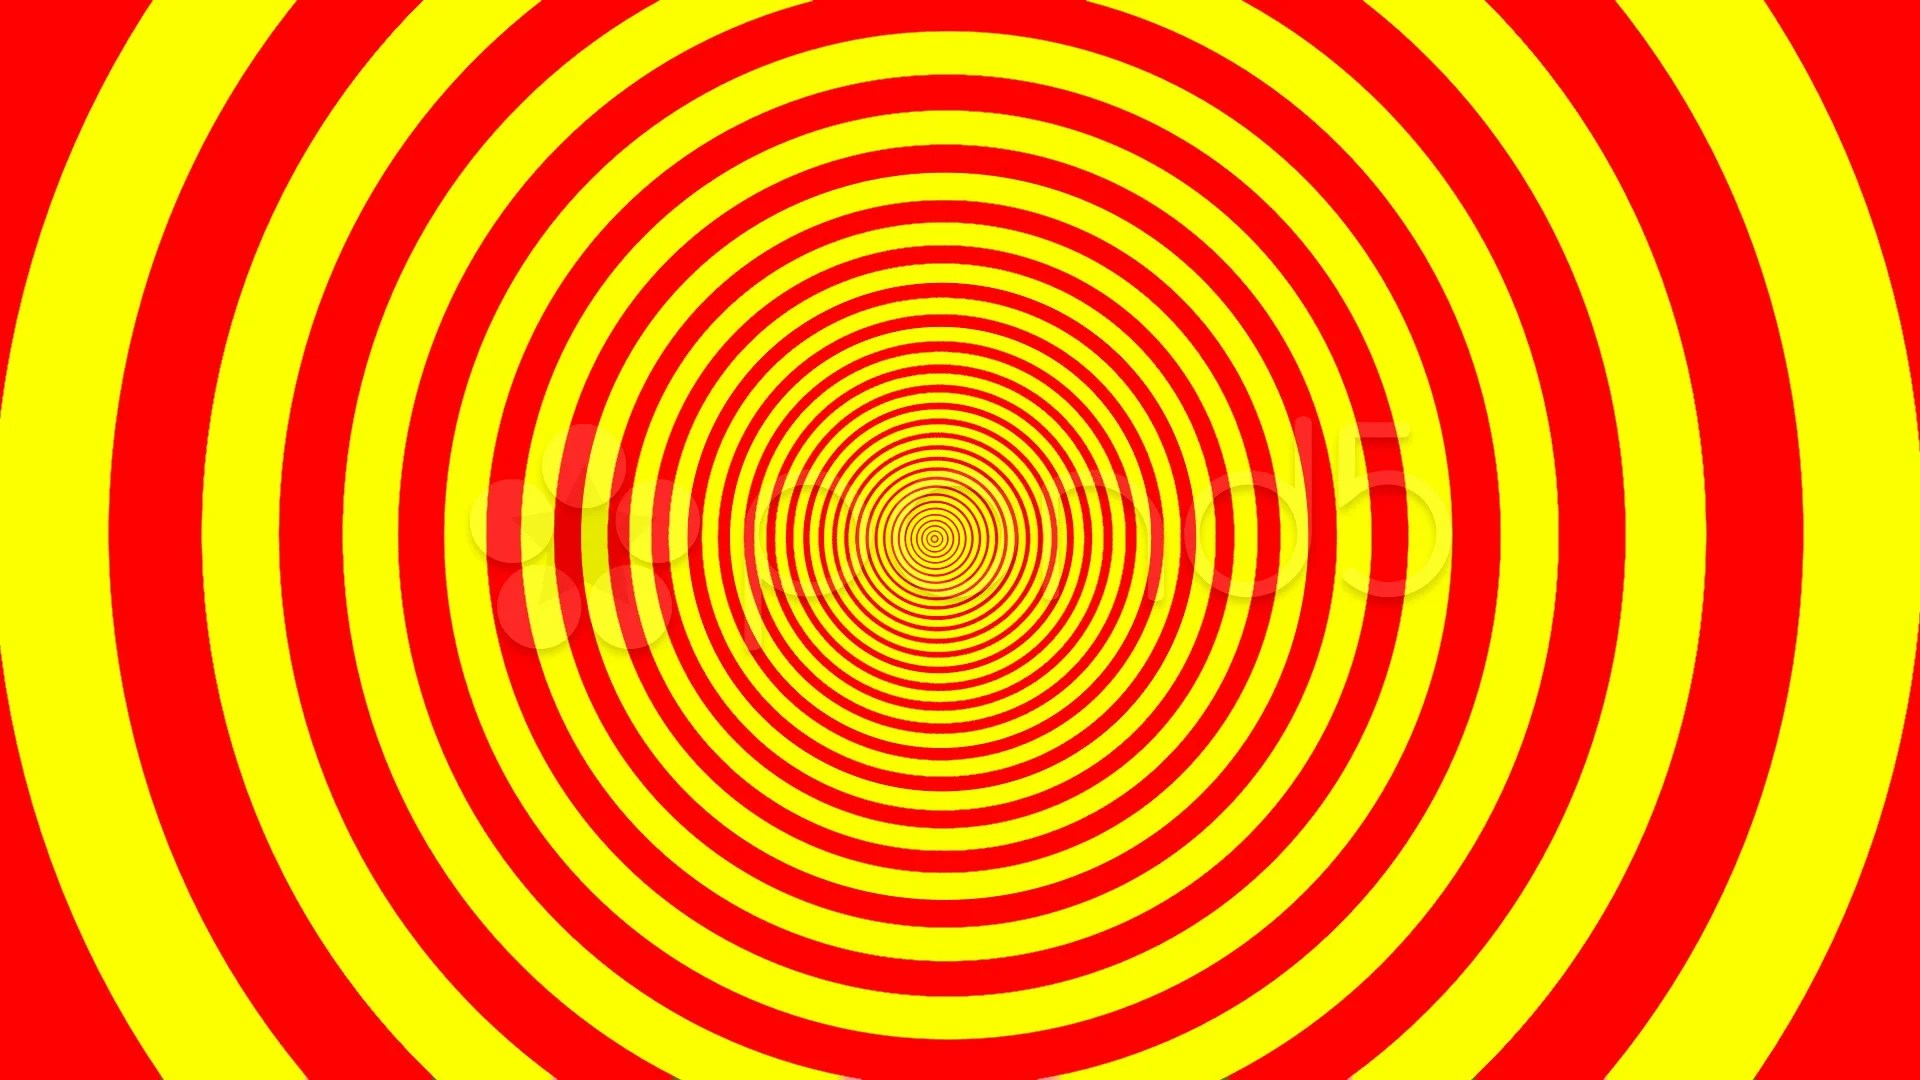 industrial chairs target swivel chair arms video: optical illusion tunnel retro spiral hypnosis circle circles time loop ~ #4808759